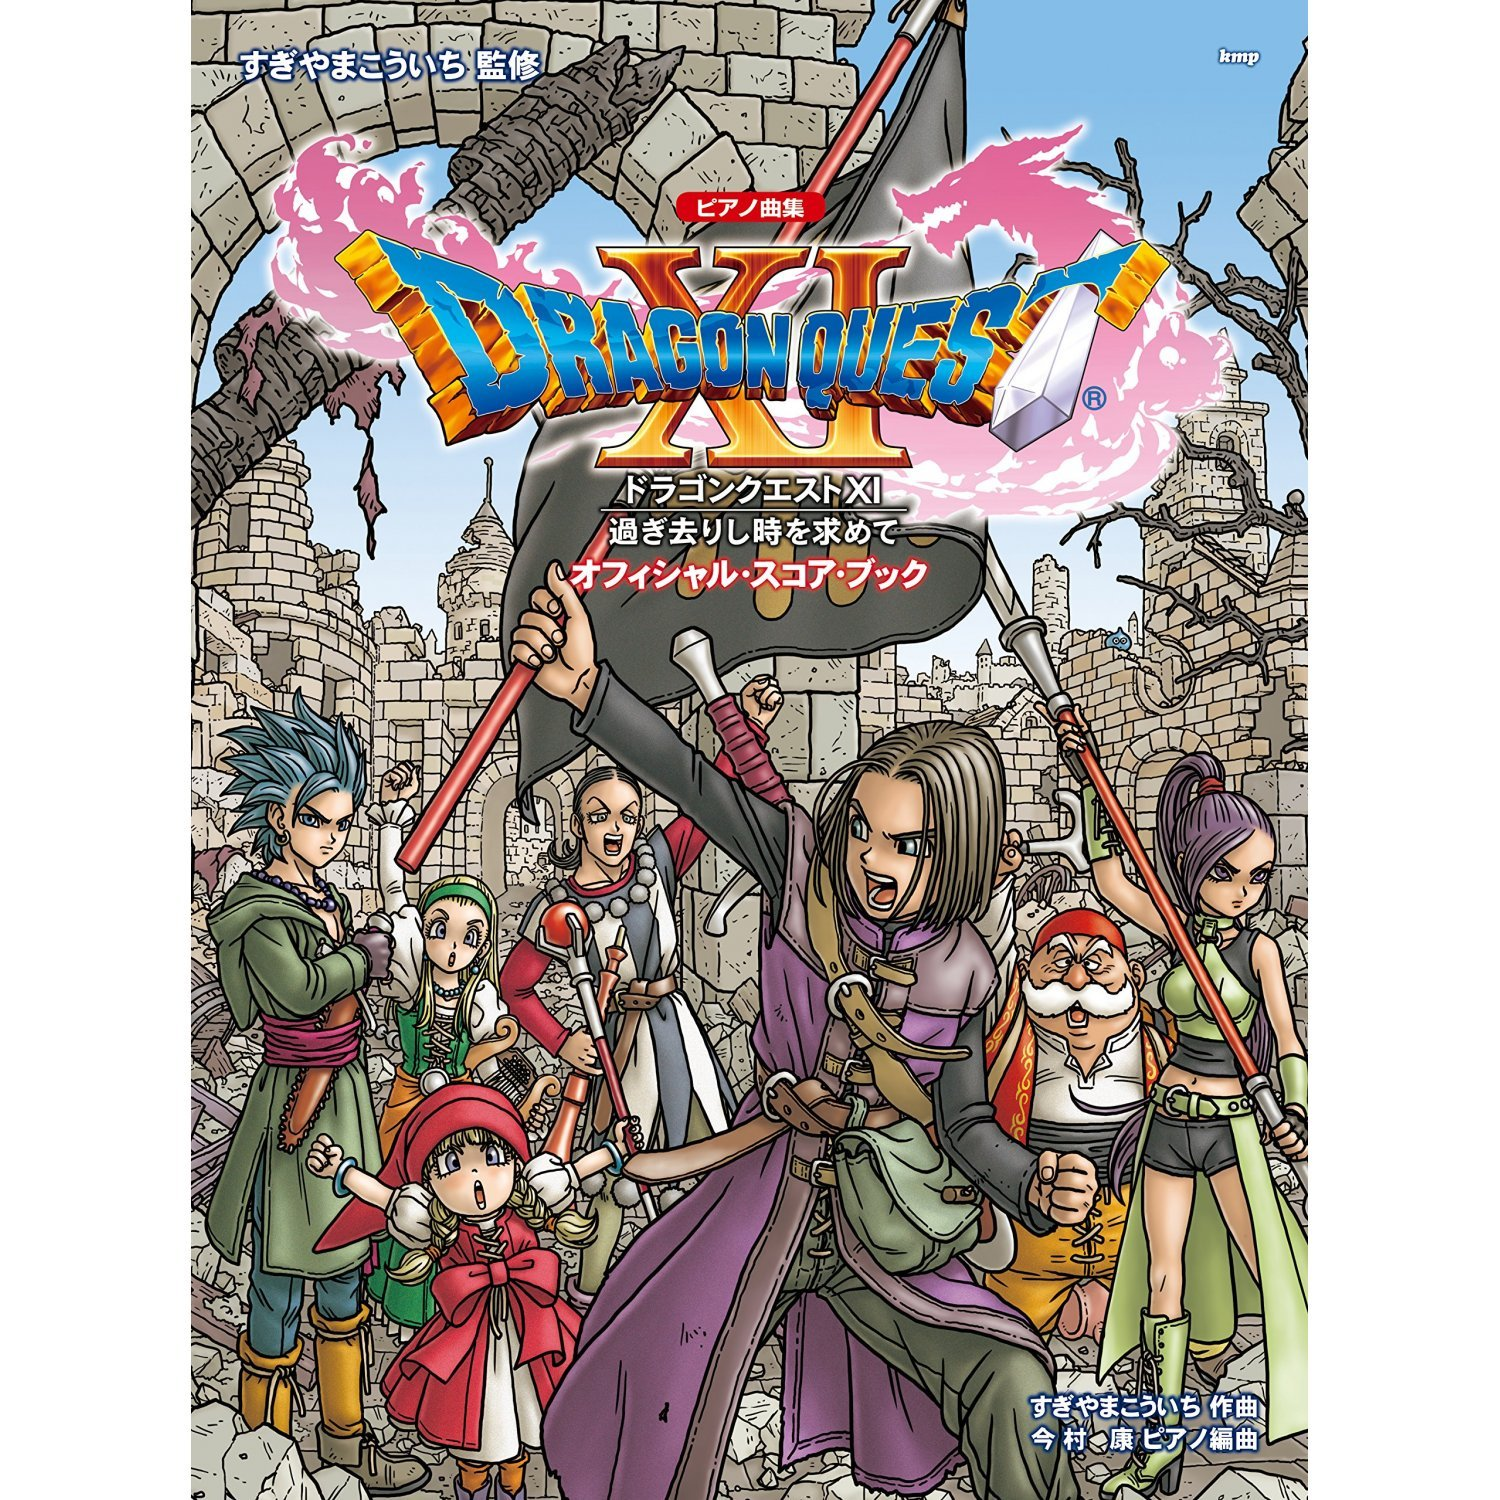 dragon quest xi official score book piano music collection